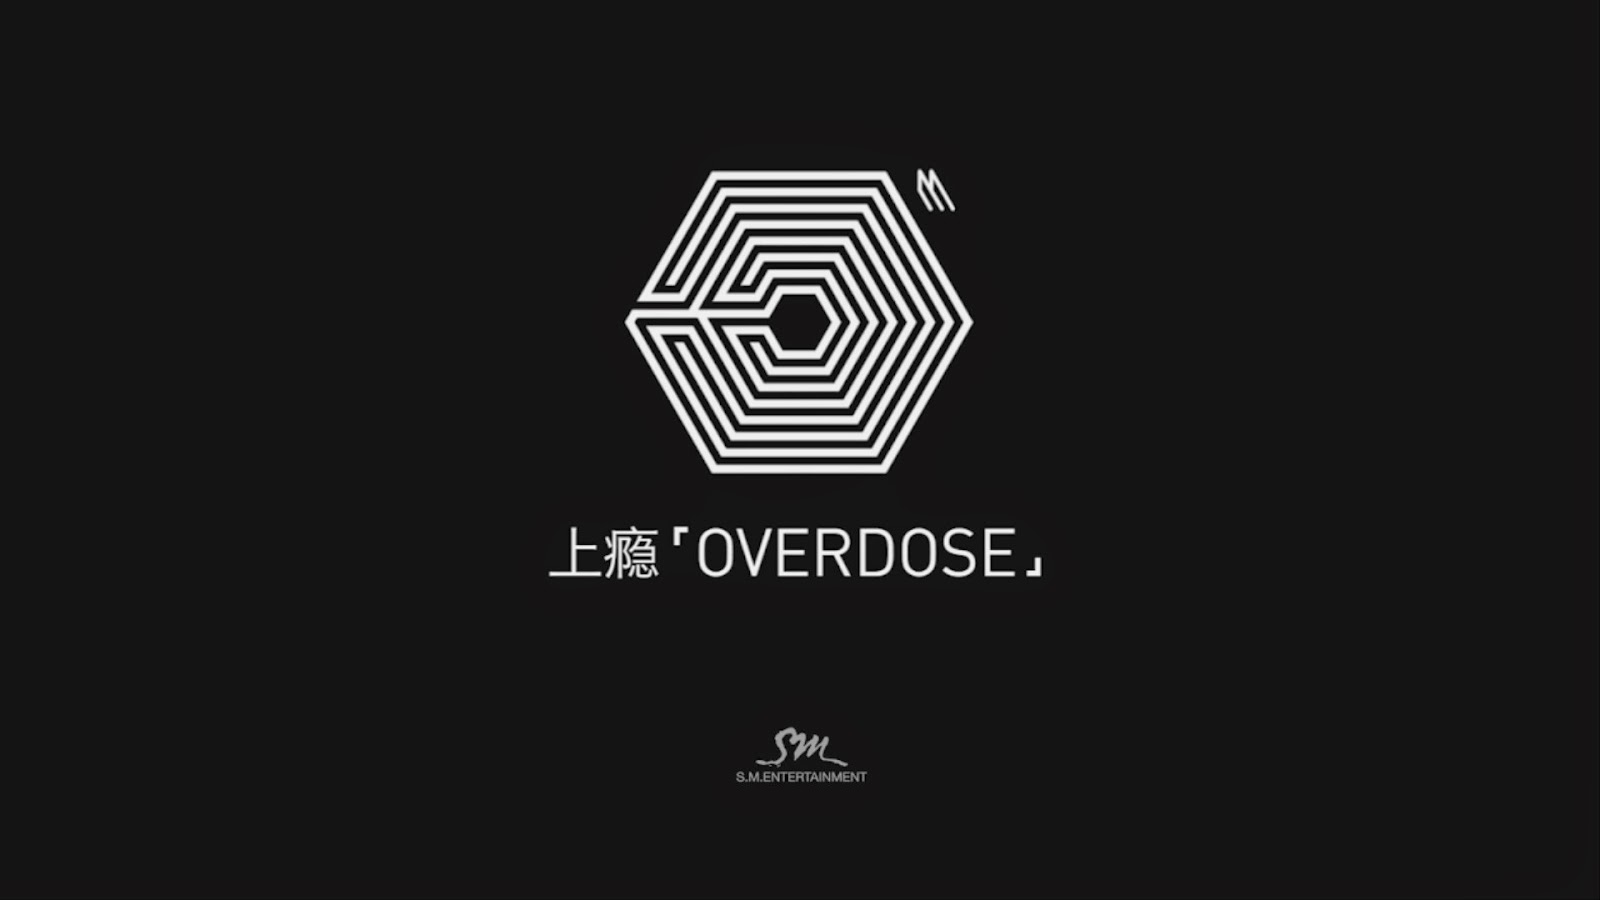 Download 2nd Mini Album EXO M – Overdose (Complete) maxresdefaultexo m+logo